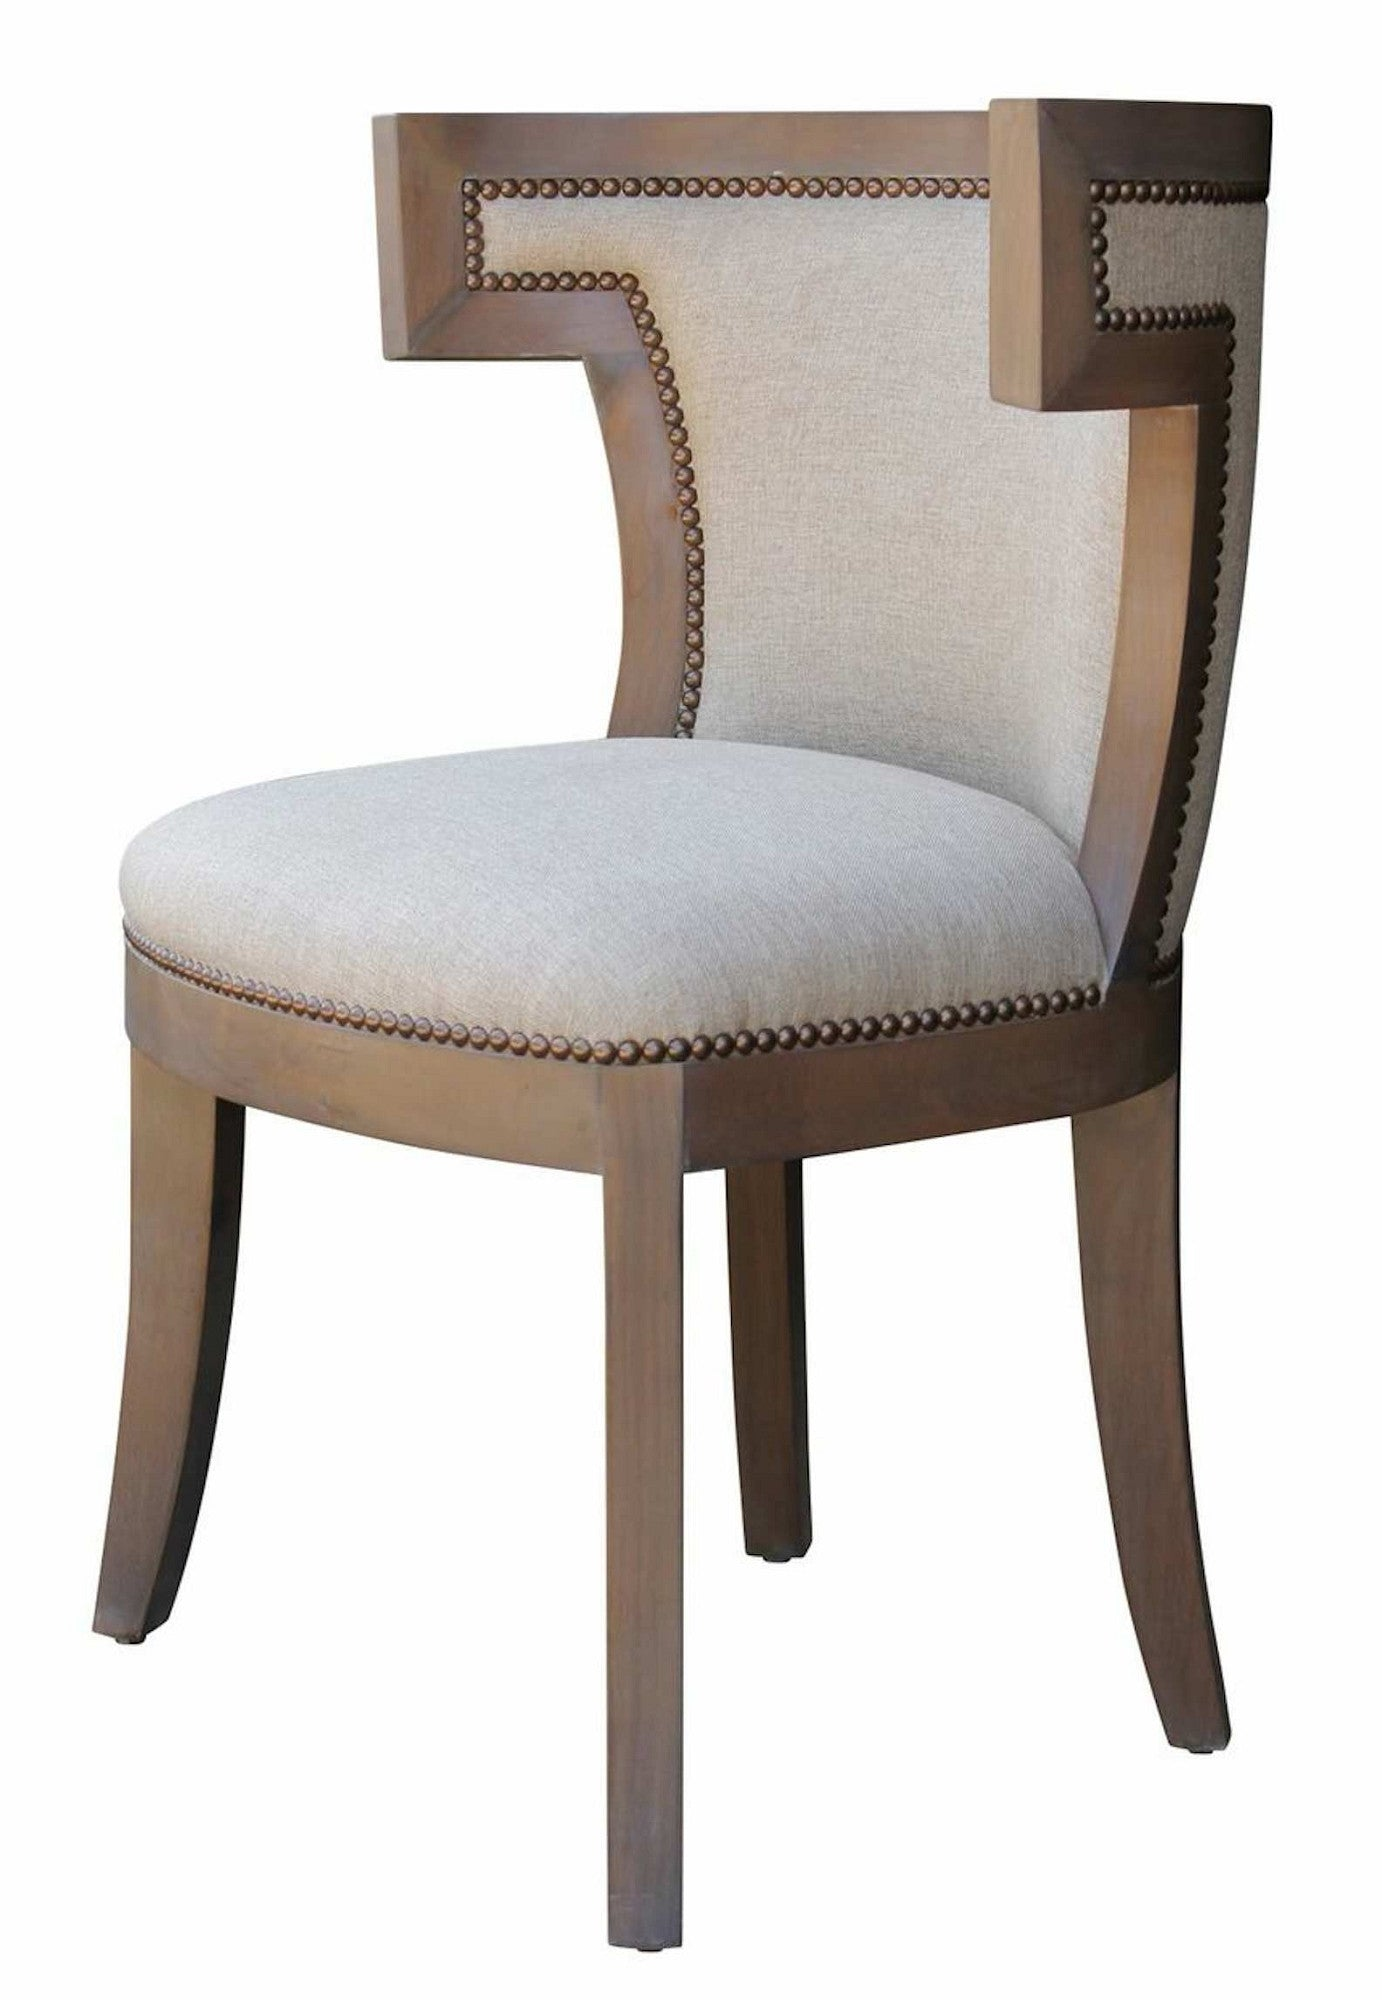 Custom Dining Room Chairs for Every Home Interior Design Style